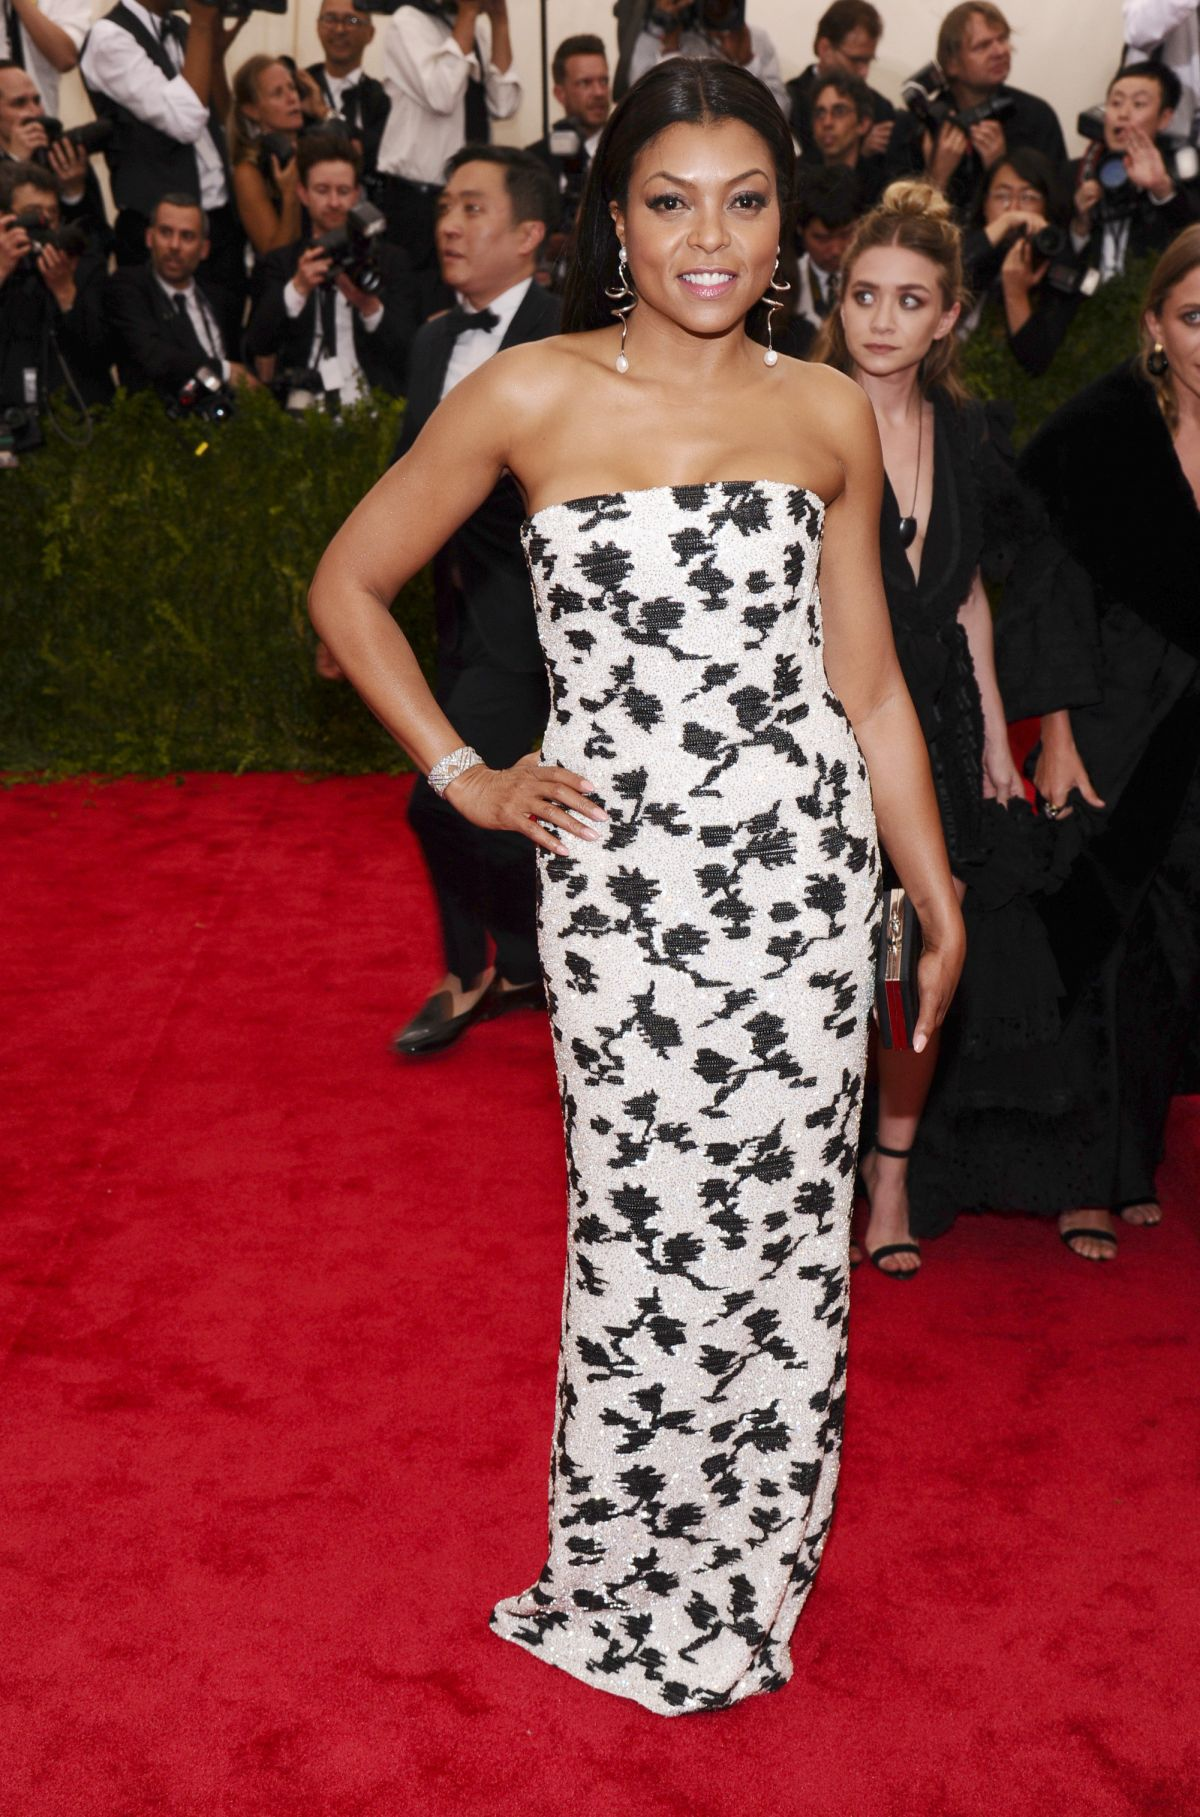 TARAJI P. HENSON at MET Gala 2015 in New York